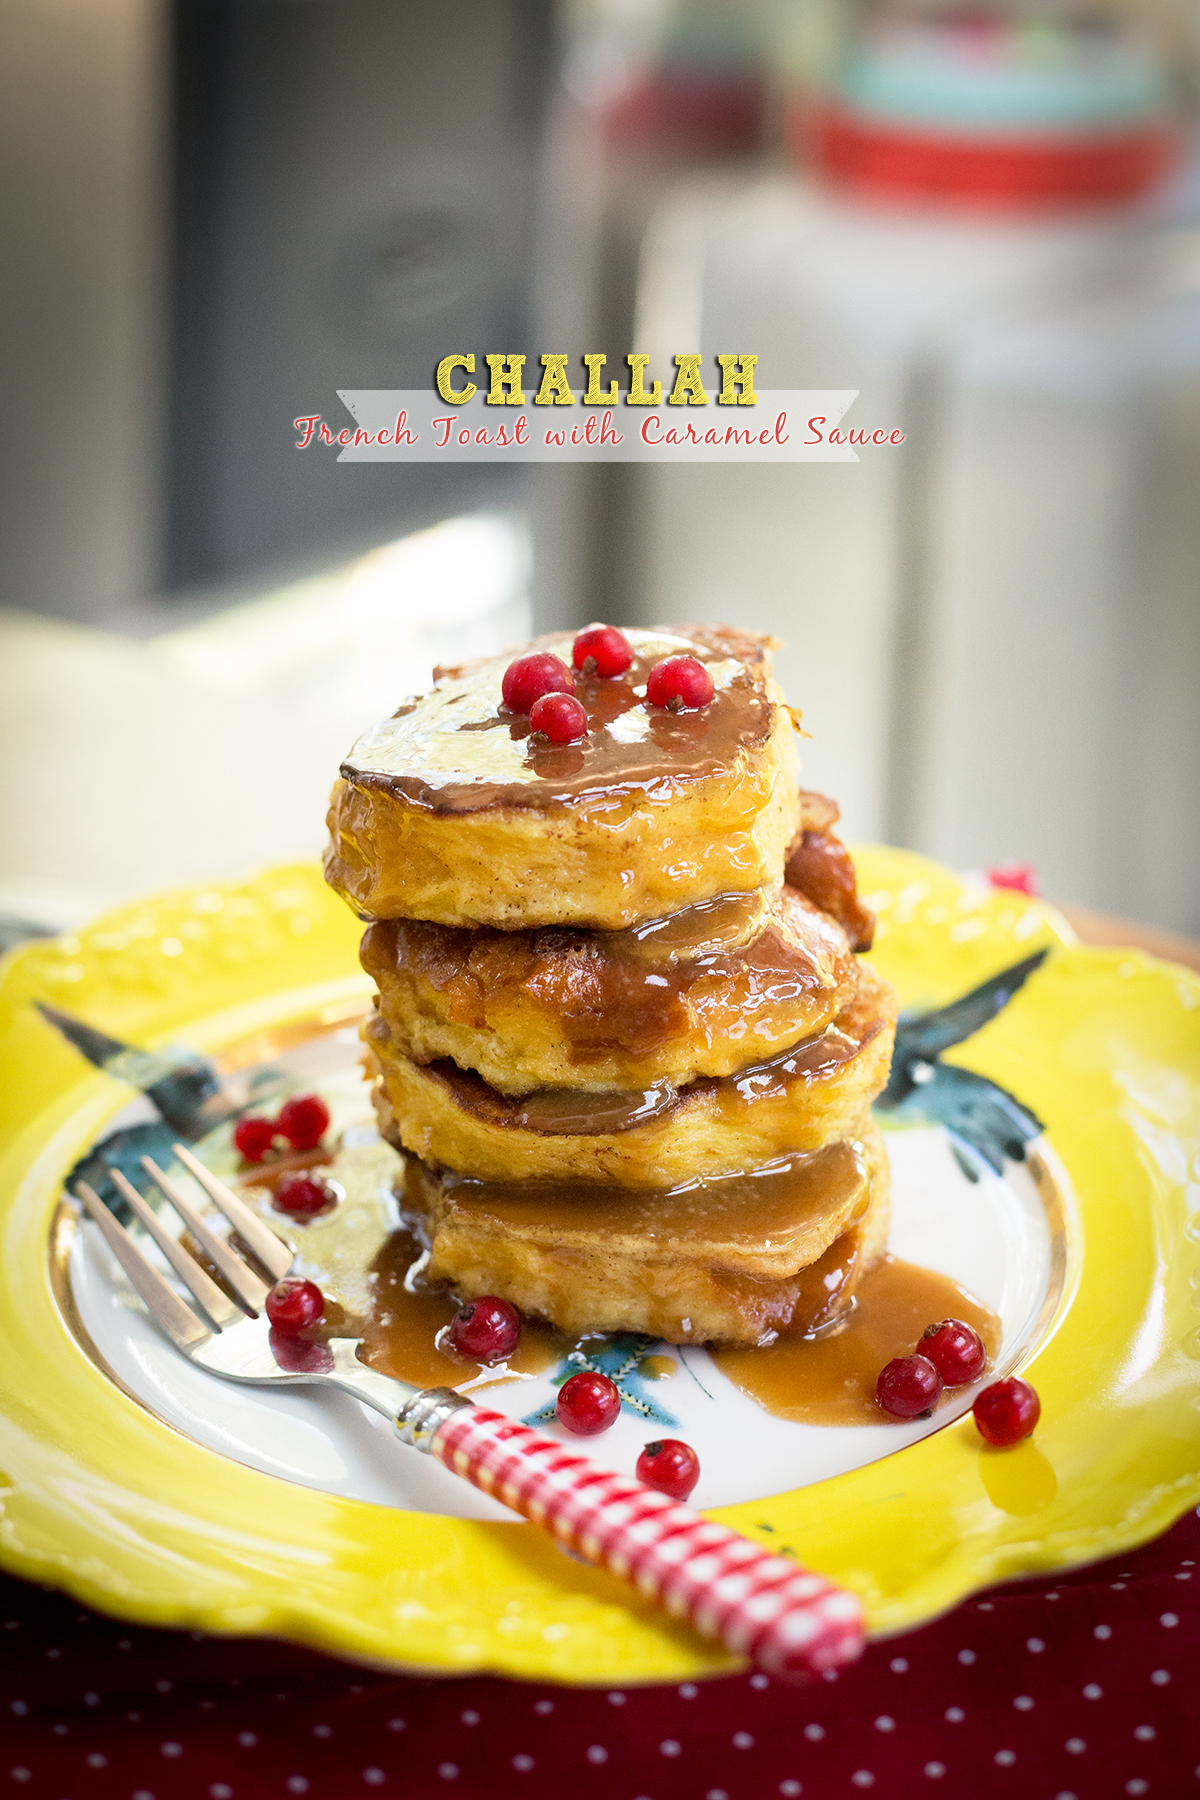 Challah French Toast with caramel sauce and red tart currants in the airstream kitchen